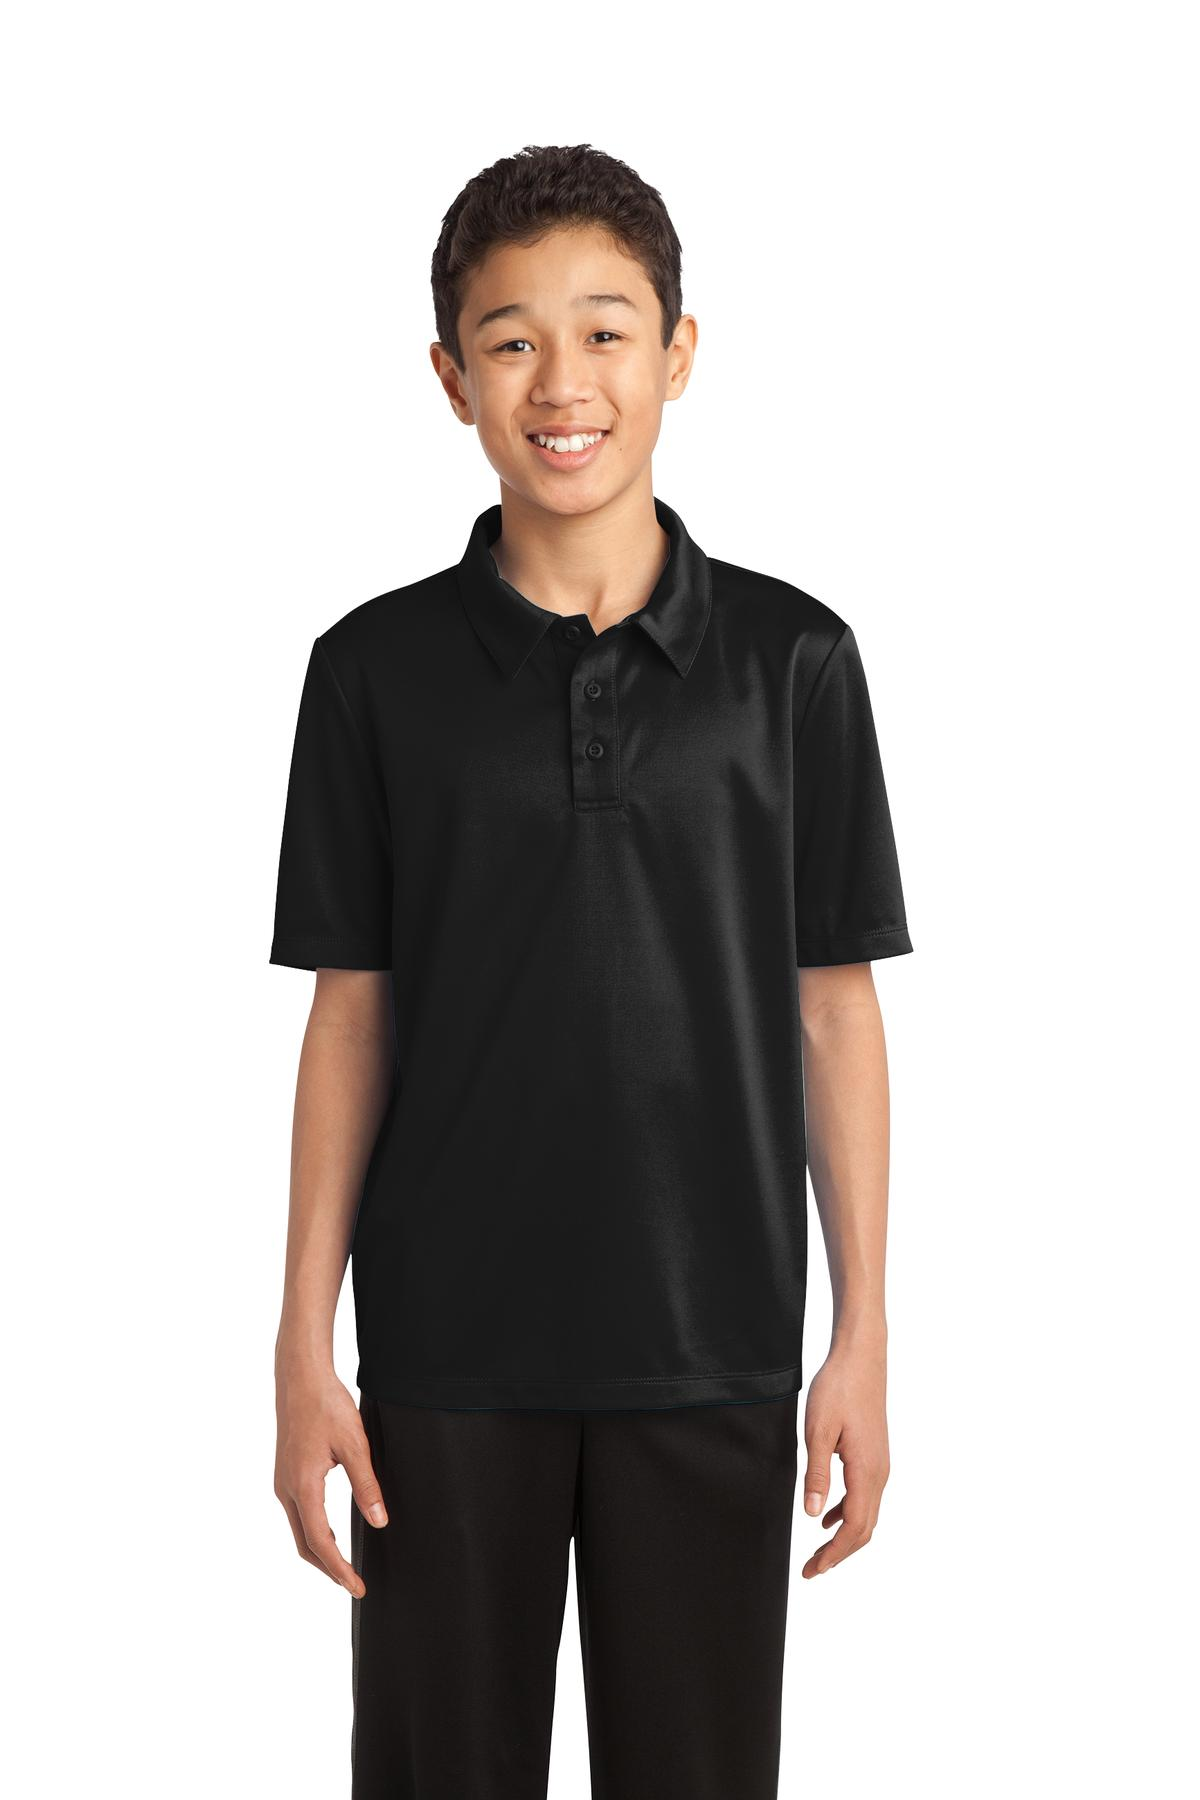 Port Authority ®  Youth Silk Touch™ Performance Polo. Y540 - Black